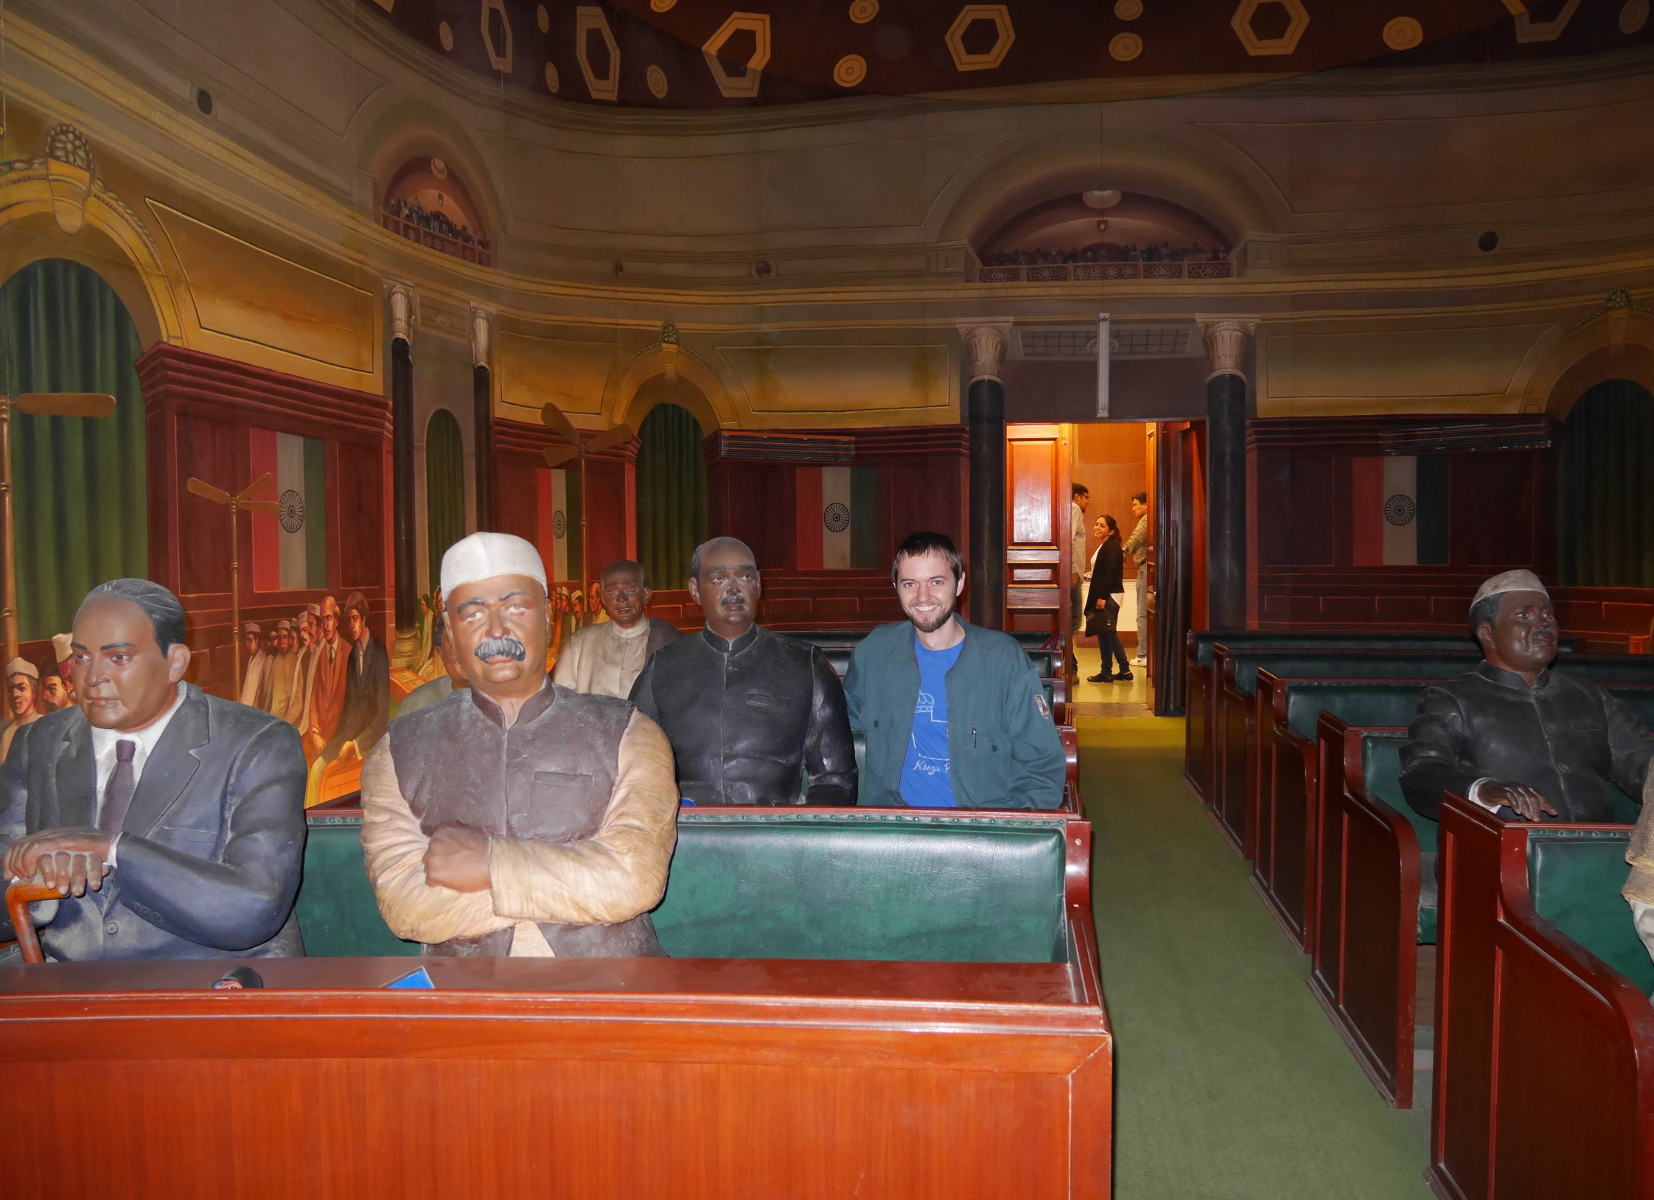 Surreal Lok Sabha replica, with trompe-l'oeil walls, mannequins of MPs, and spots on the benches for real people to sit too. I really hope this is preserved in any remodeling of the museum